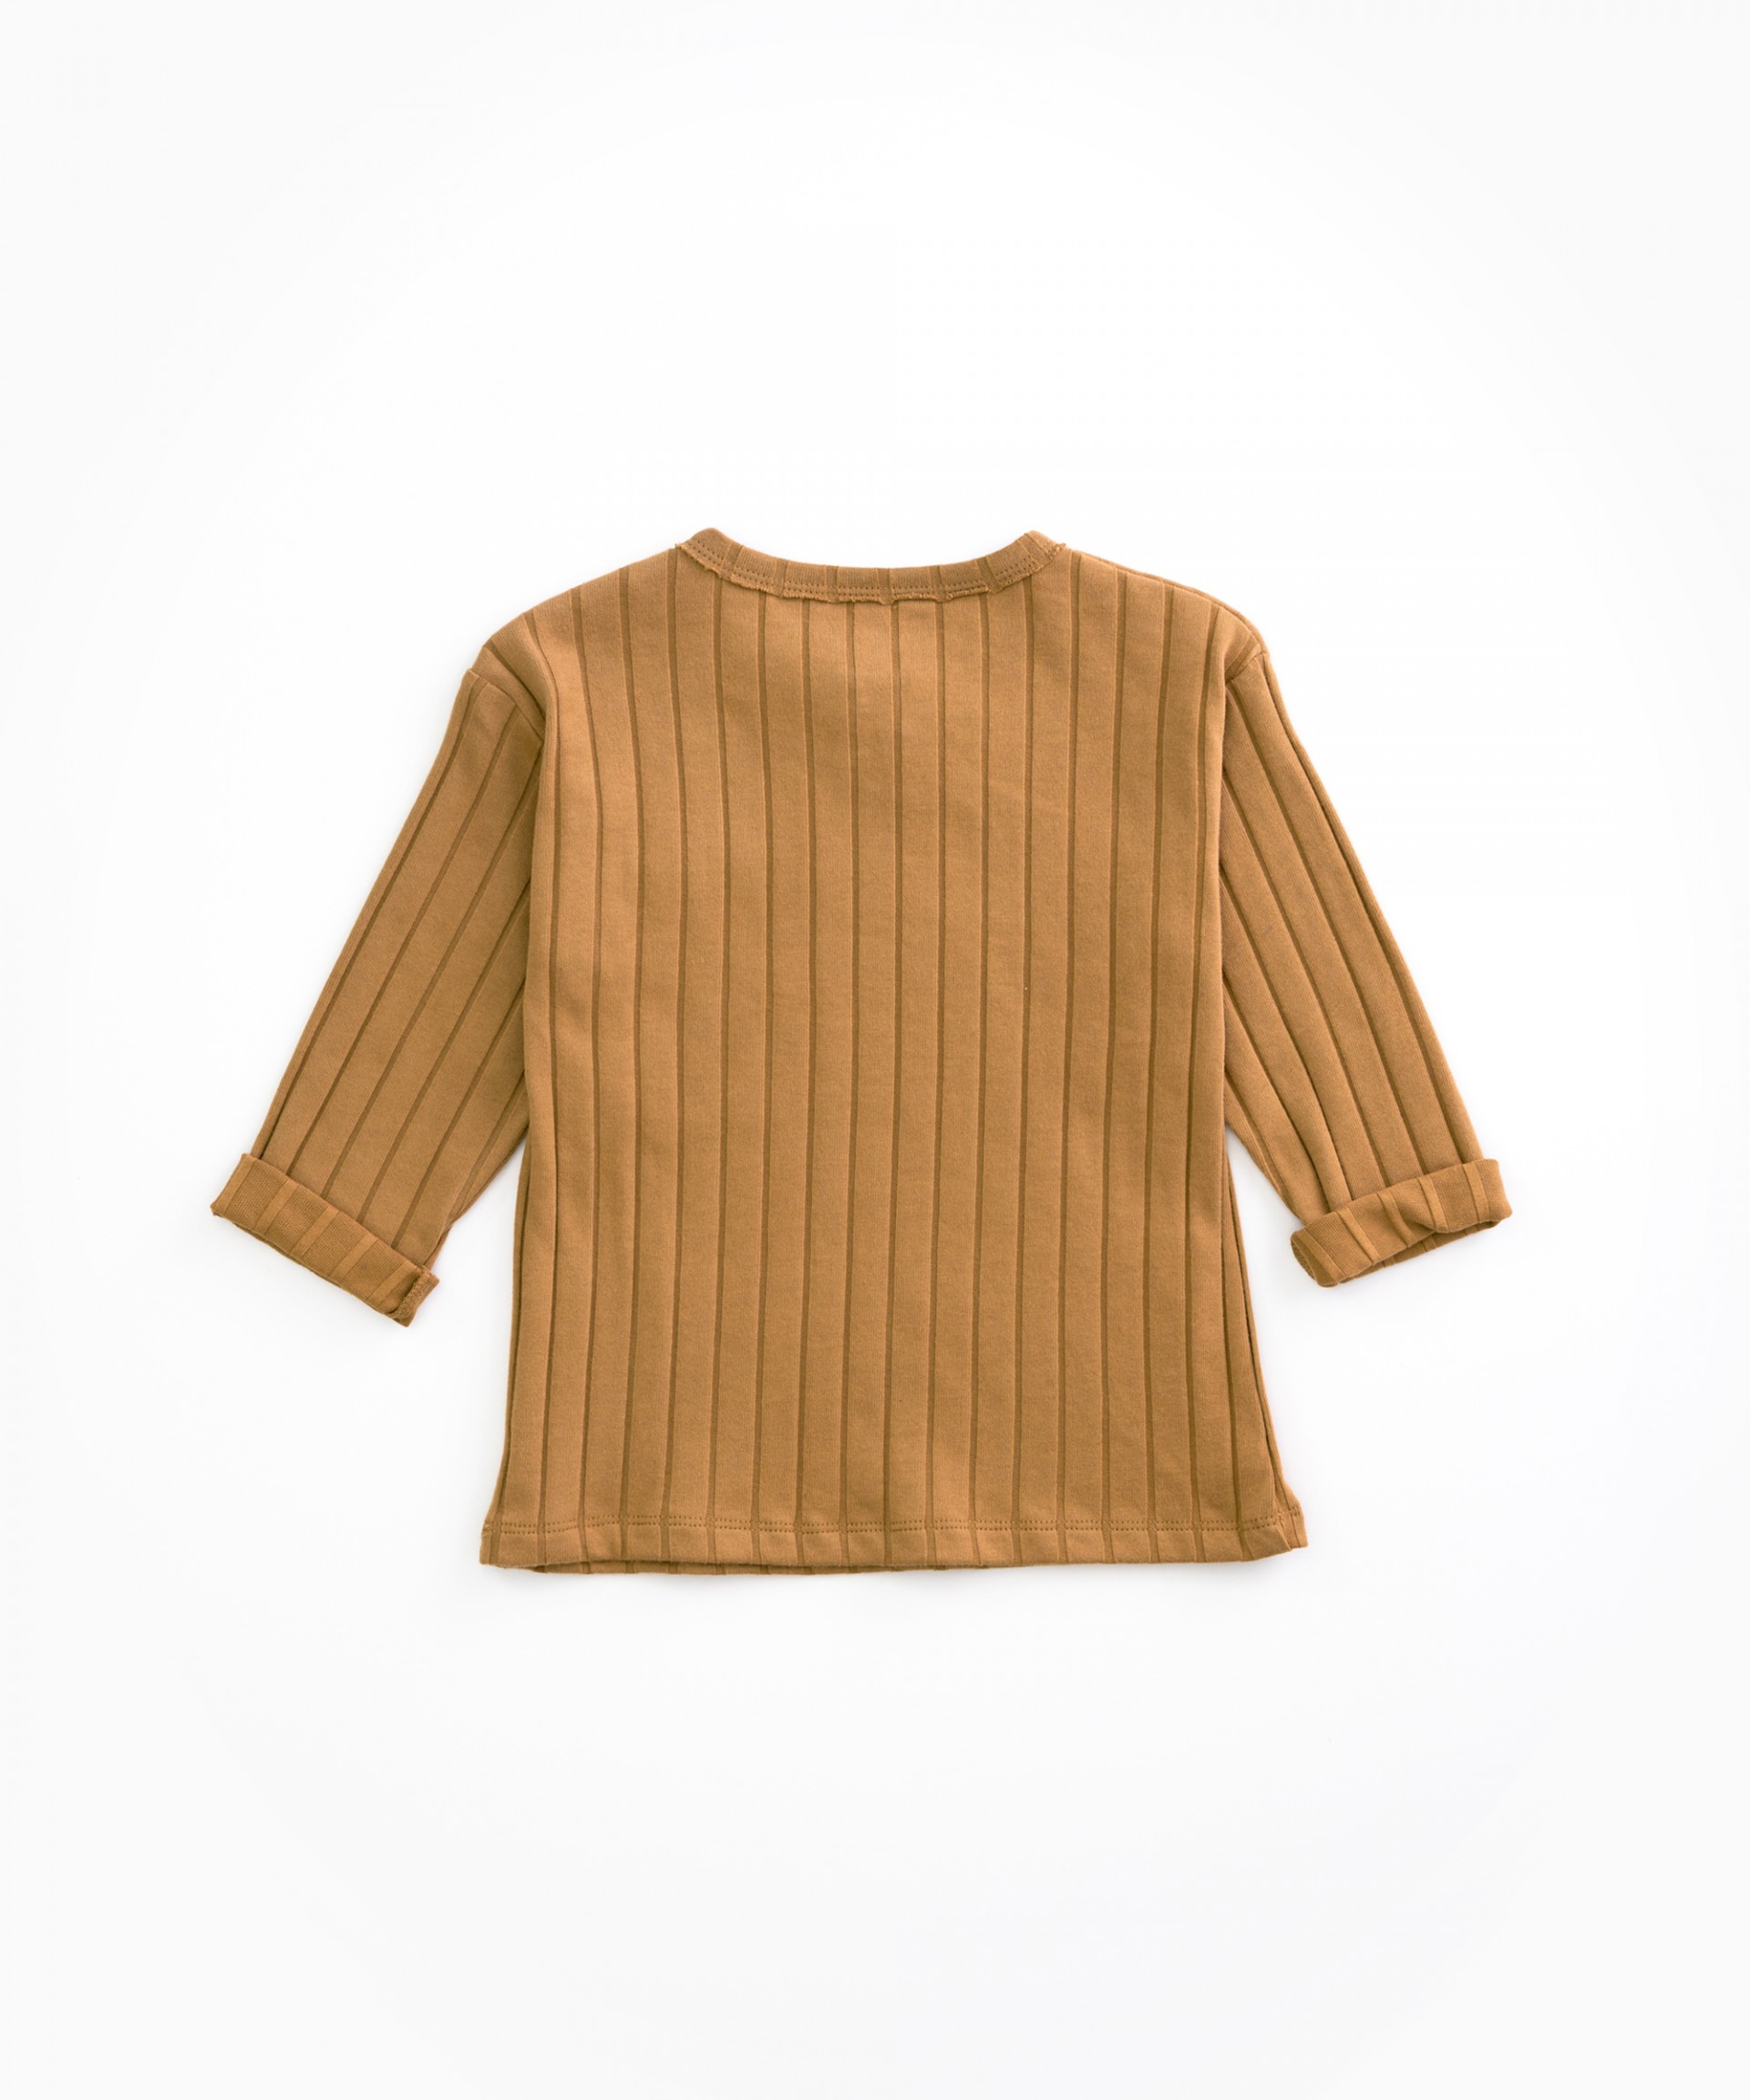 T-shirt in organic cotton with ribbing | Woodwork